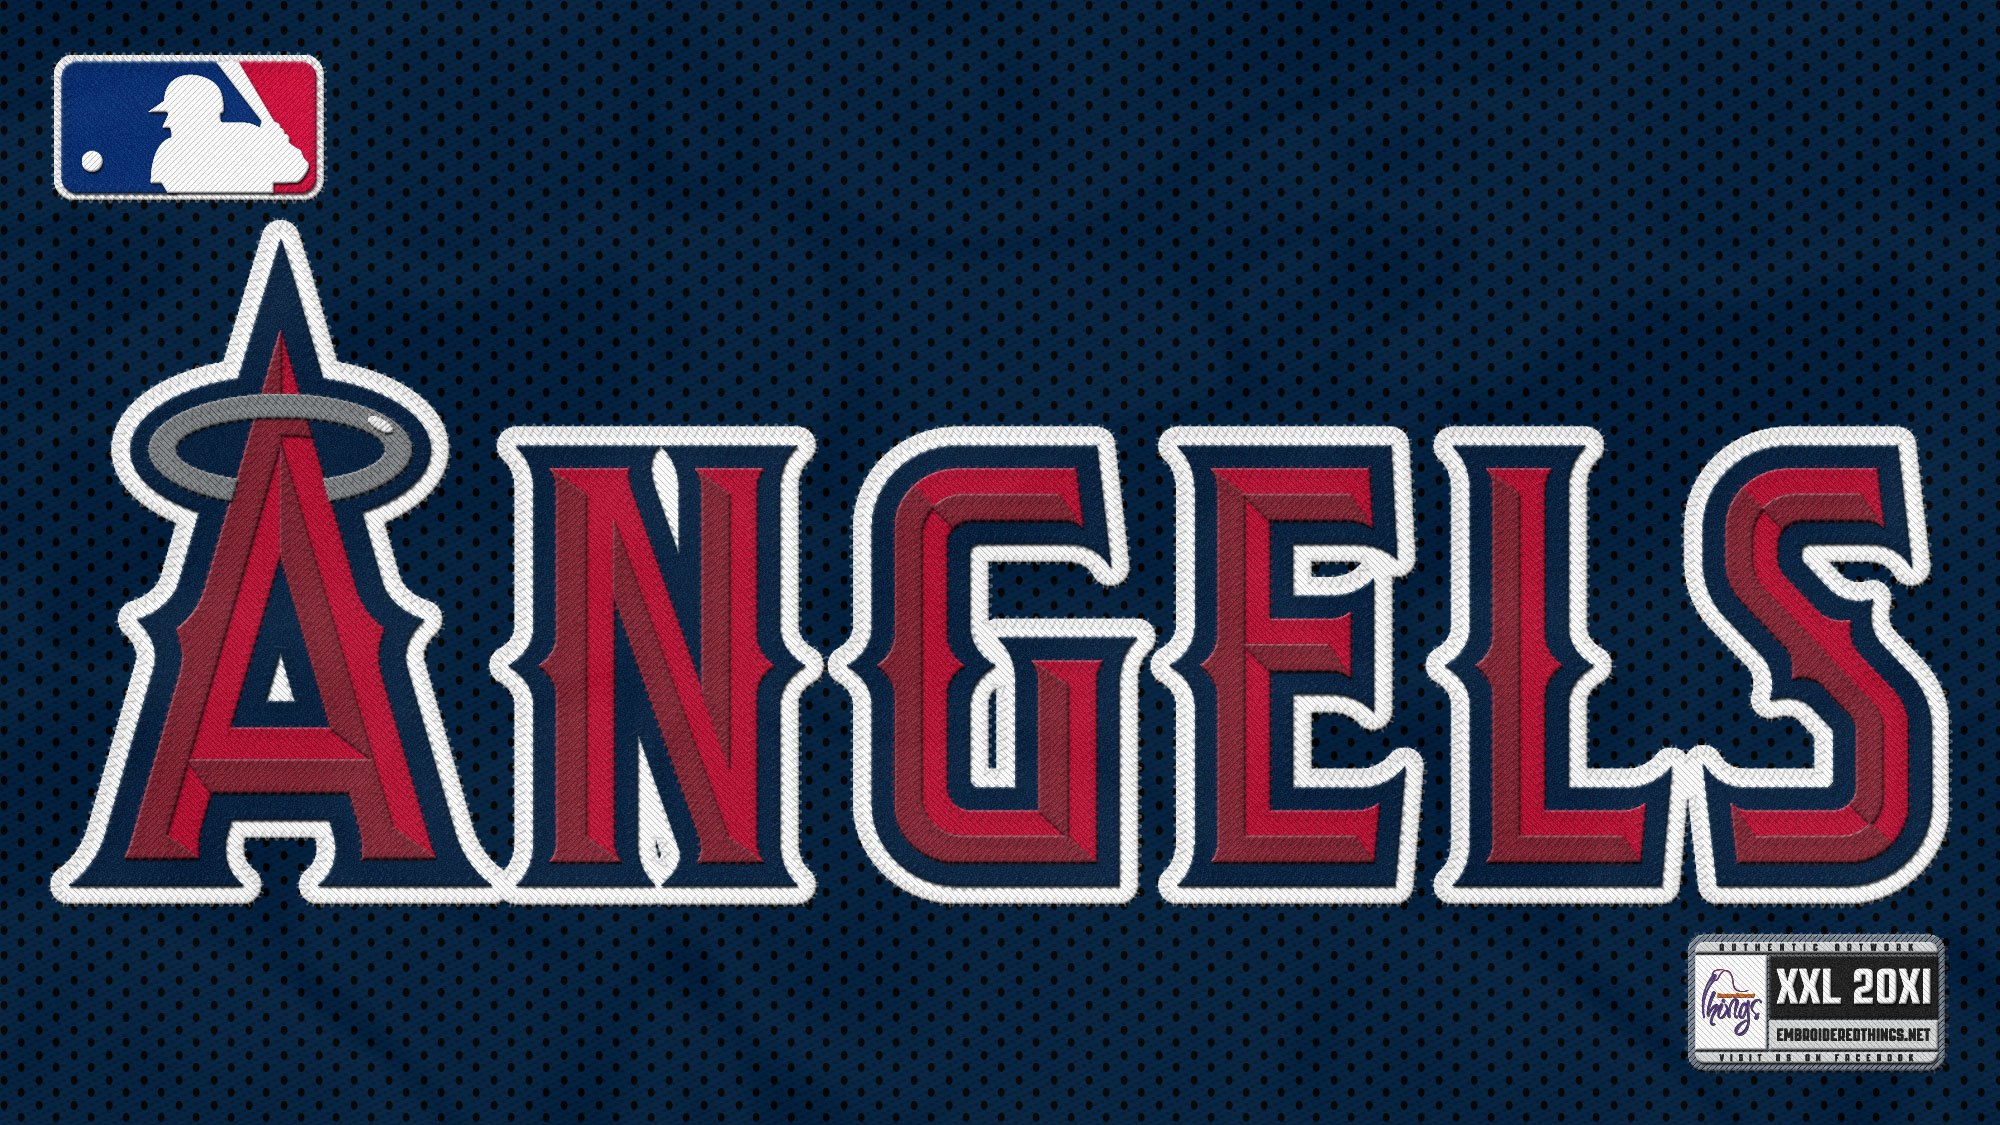 Los Angeles Angels of Anaheim Los Angeles Angels Wiki Angels baseball logo images